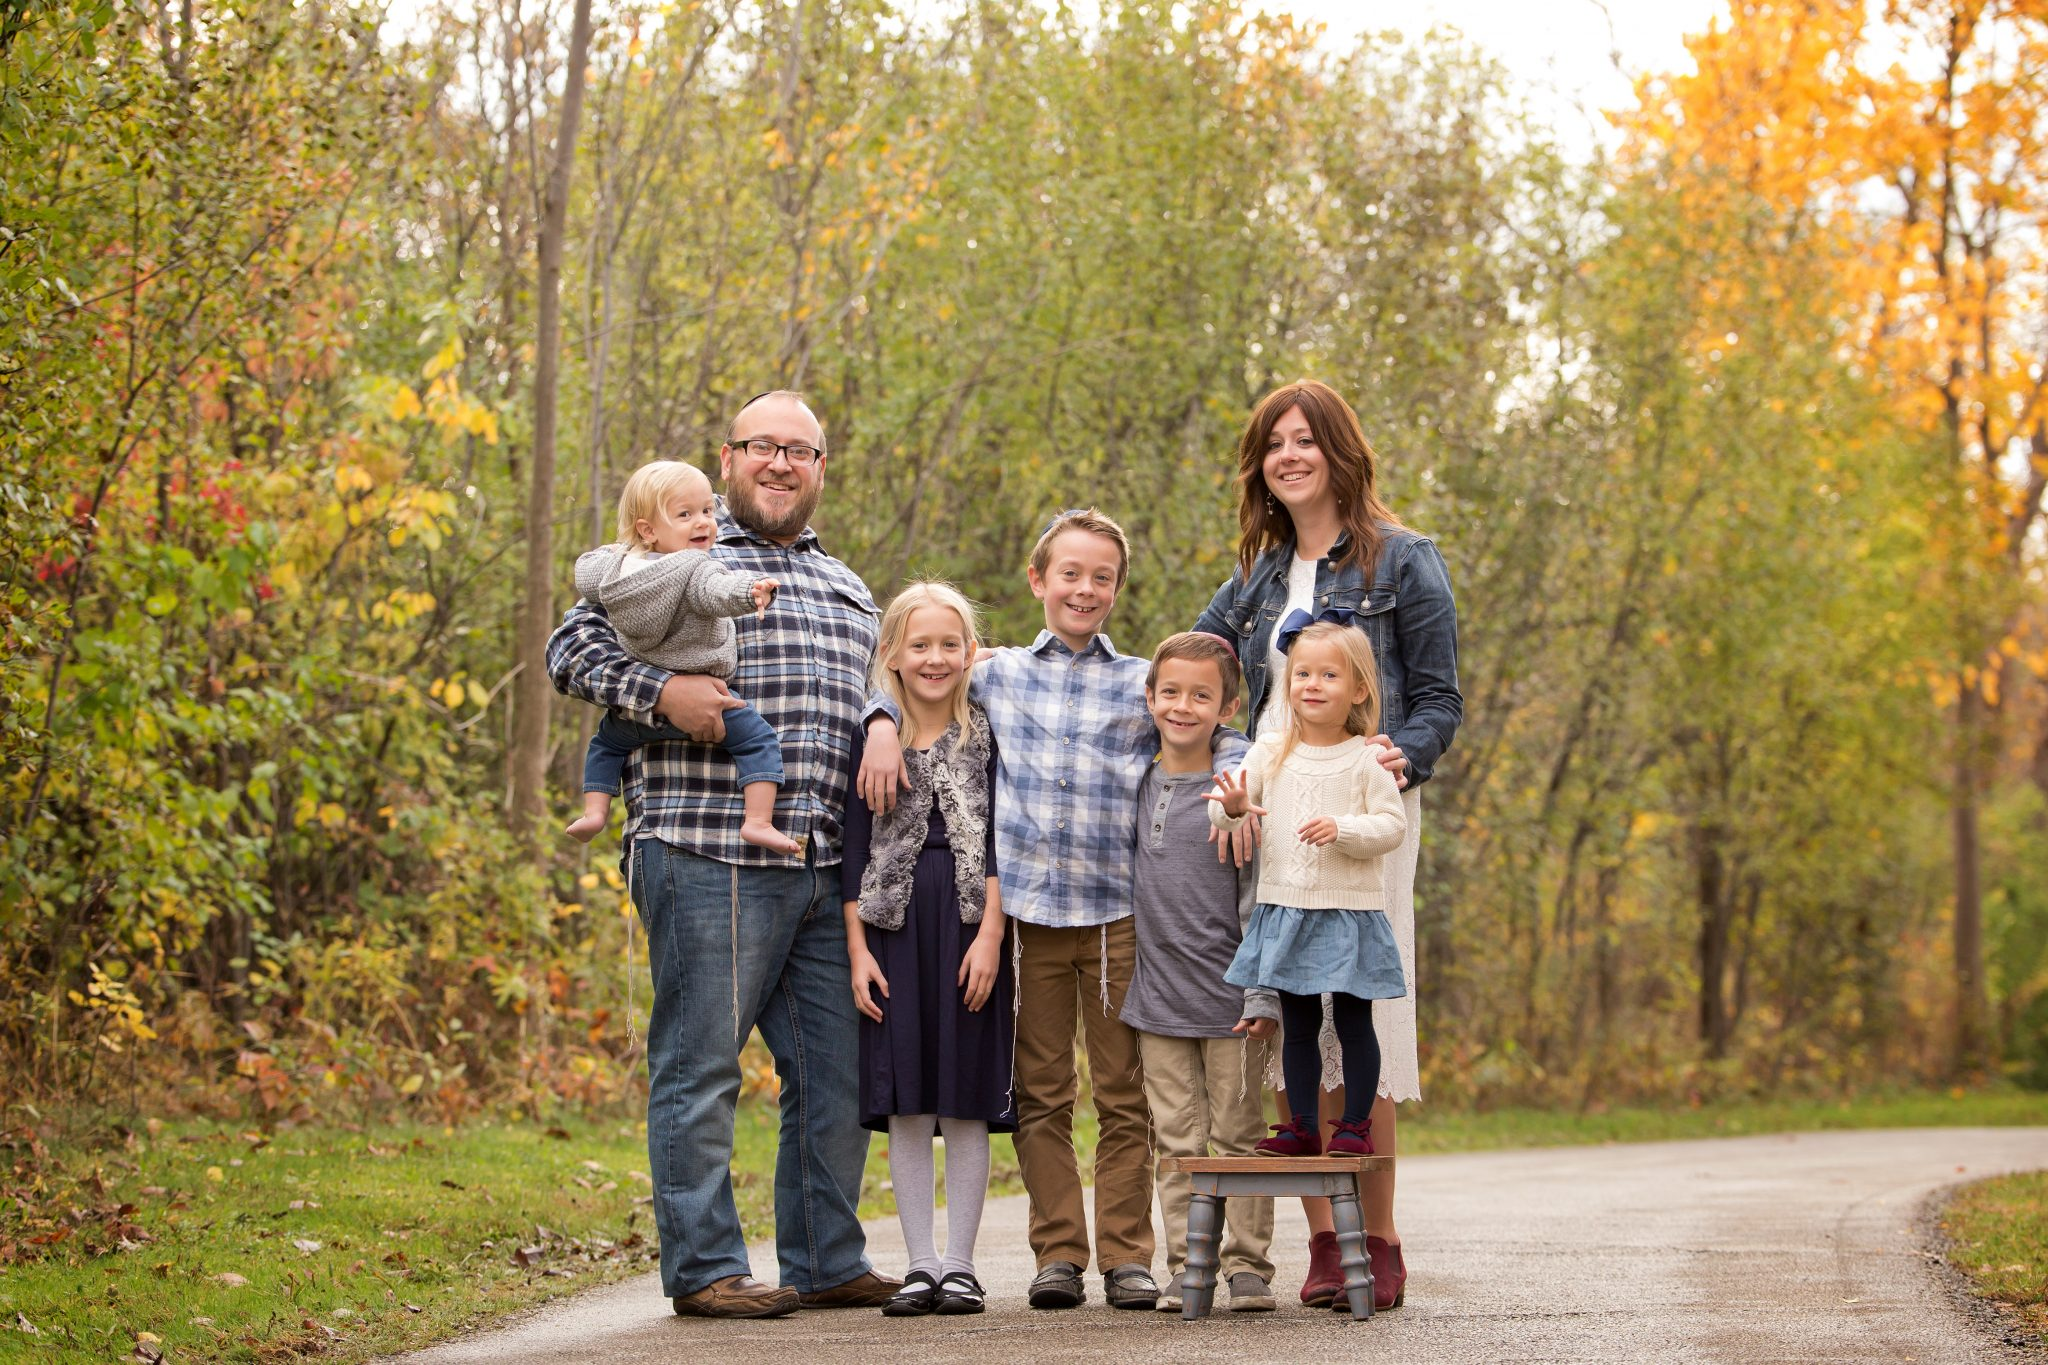 family of seven poses for their fall portrait session